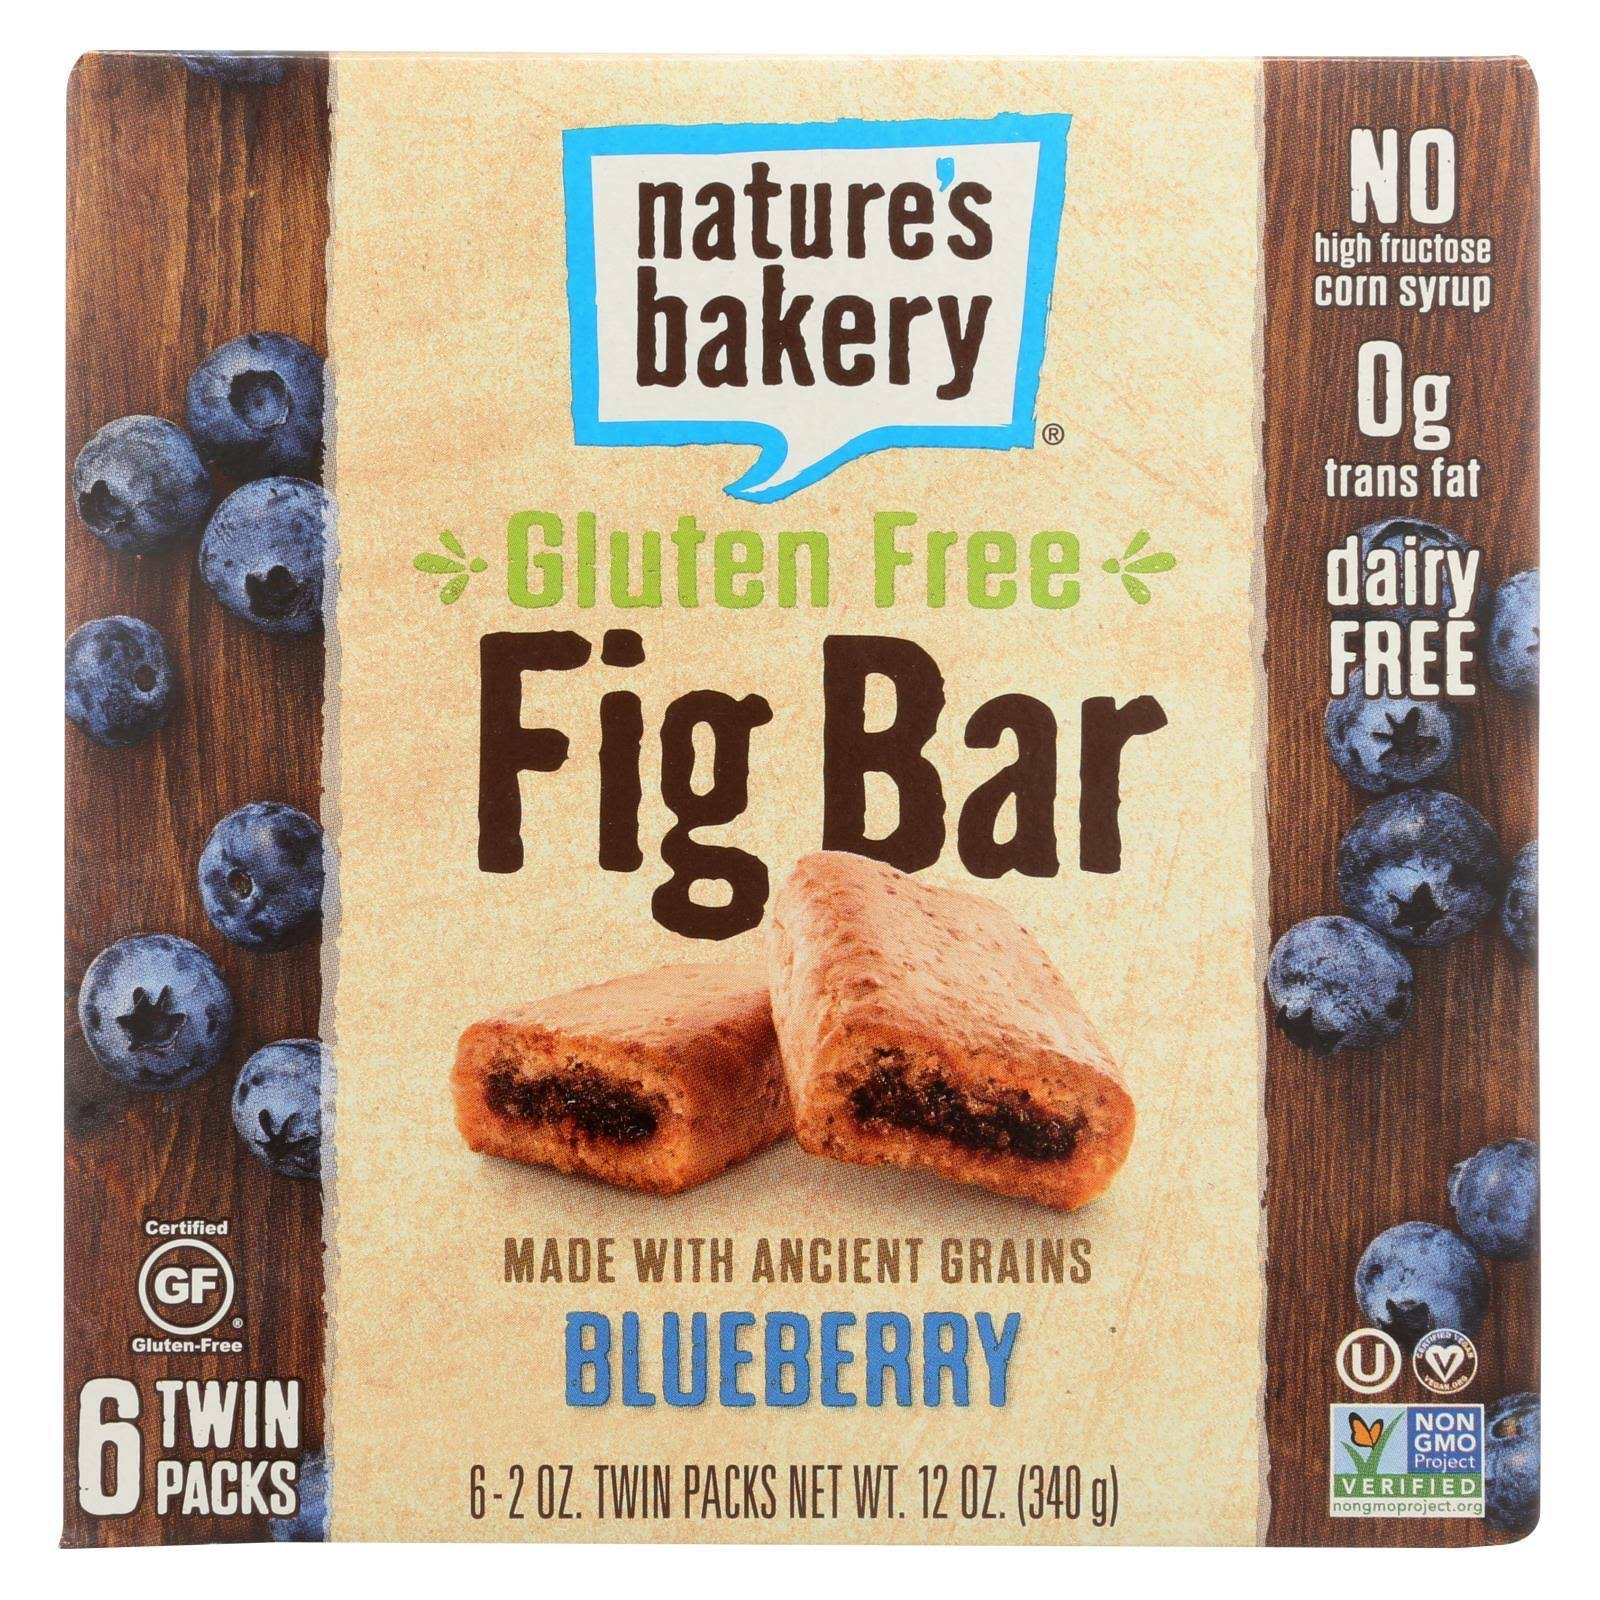 Nature's Bakery Gluten Free Fig Bars, Blueberry - 6 pack, 12 oz box